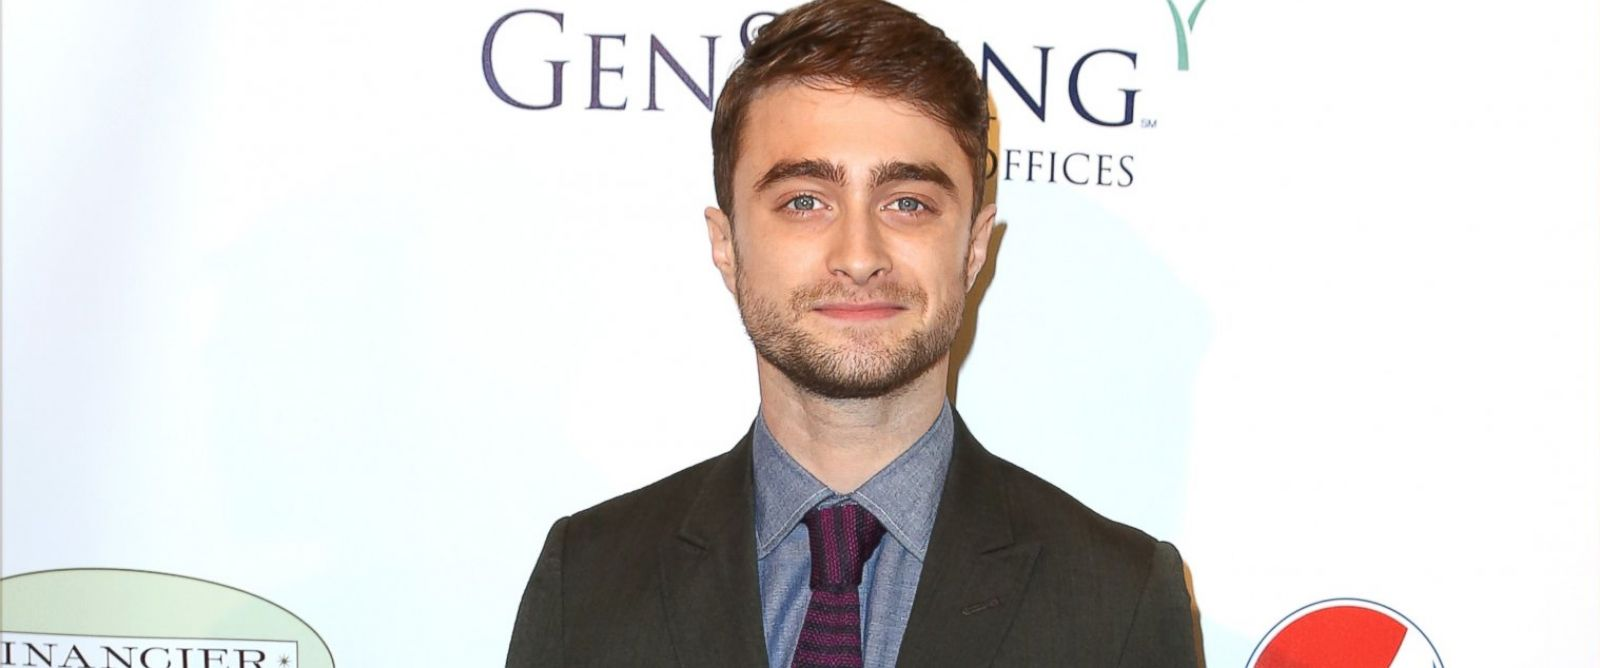 PHOTO: Daniel Radcliffe is pictured on May 16, 2014 in New York City.